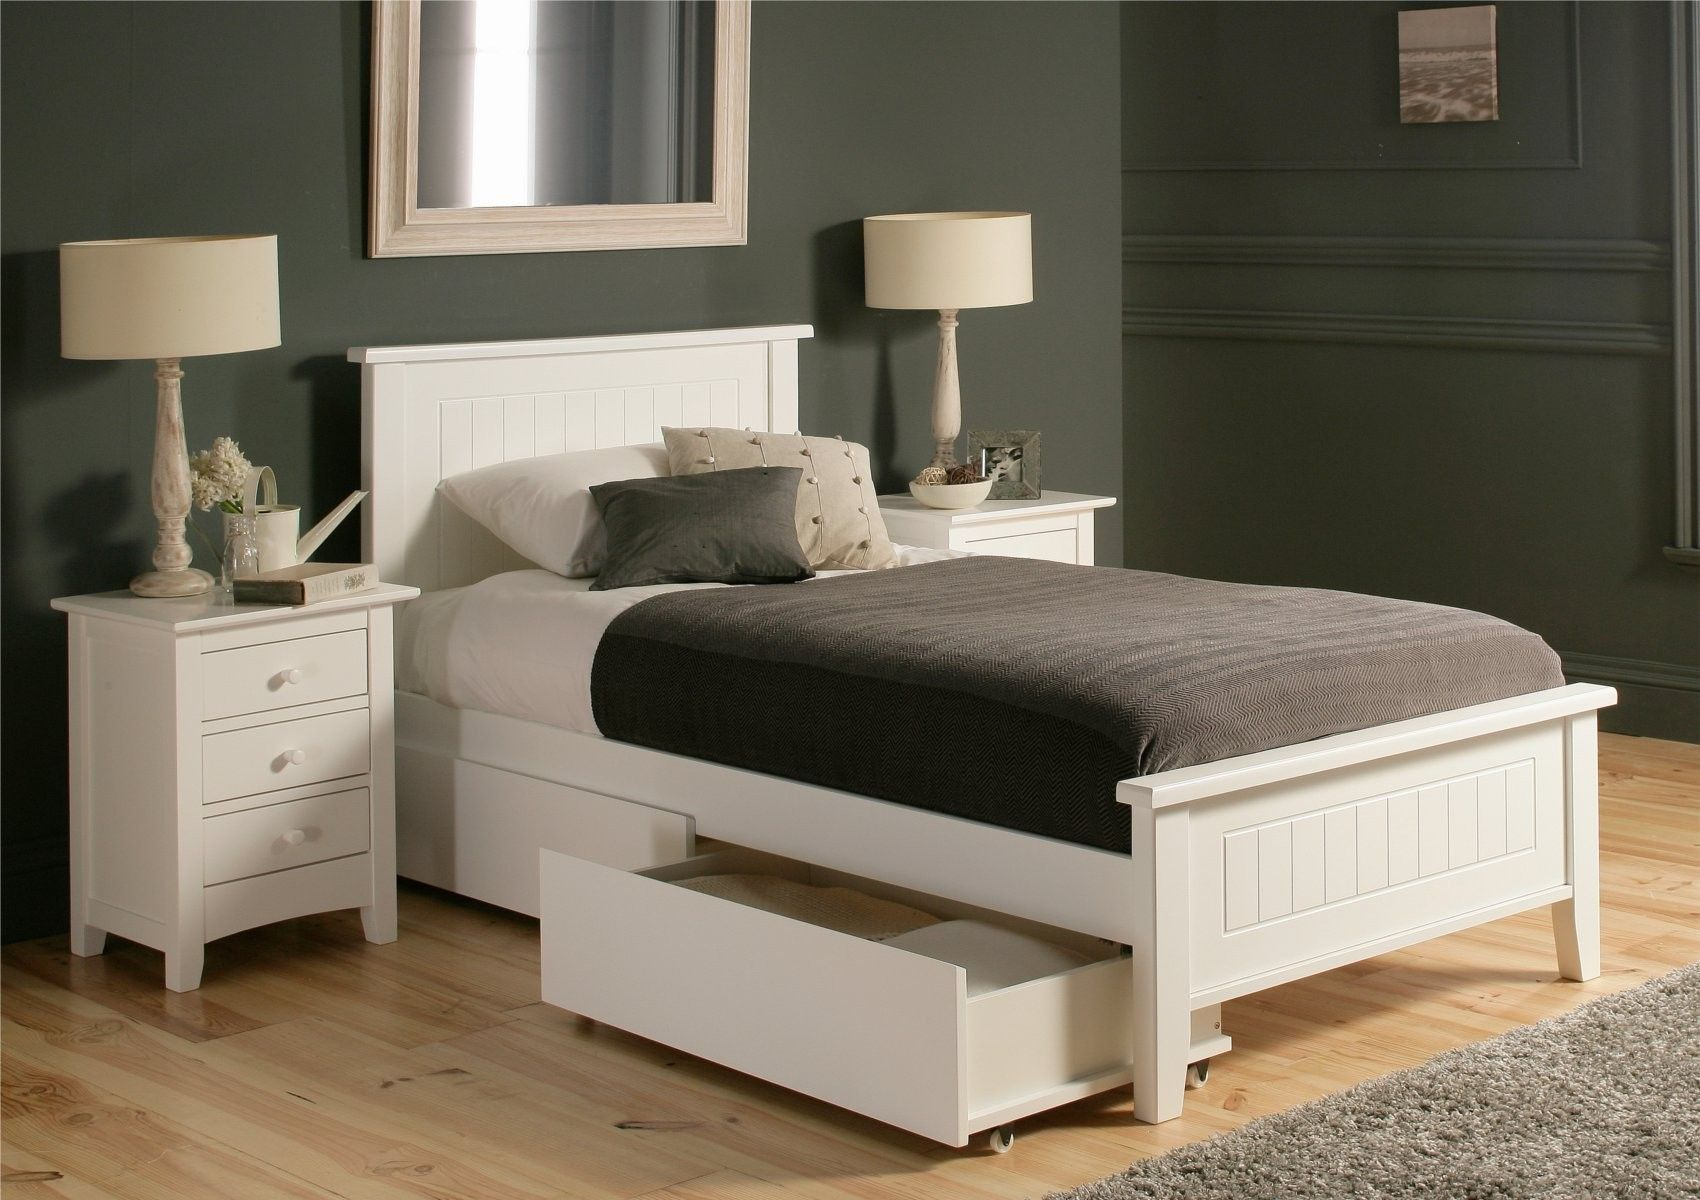 New England Solo Wooden Bed Frame E Ercis Com Decoration In 2020